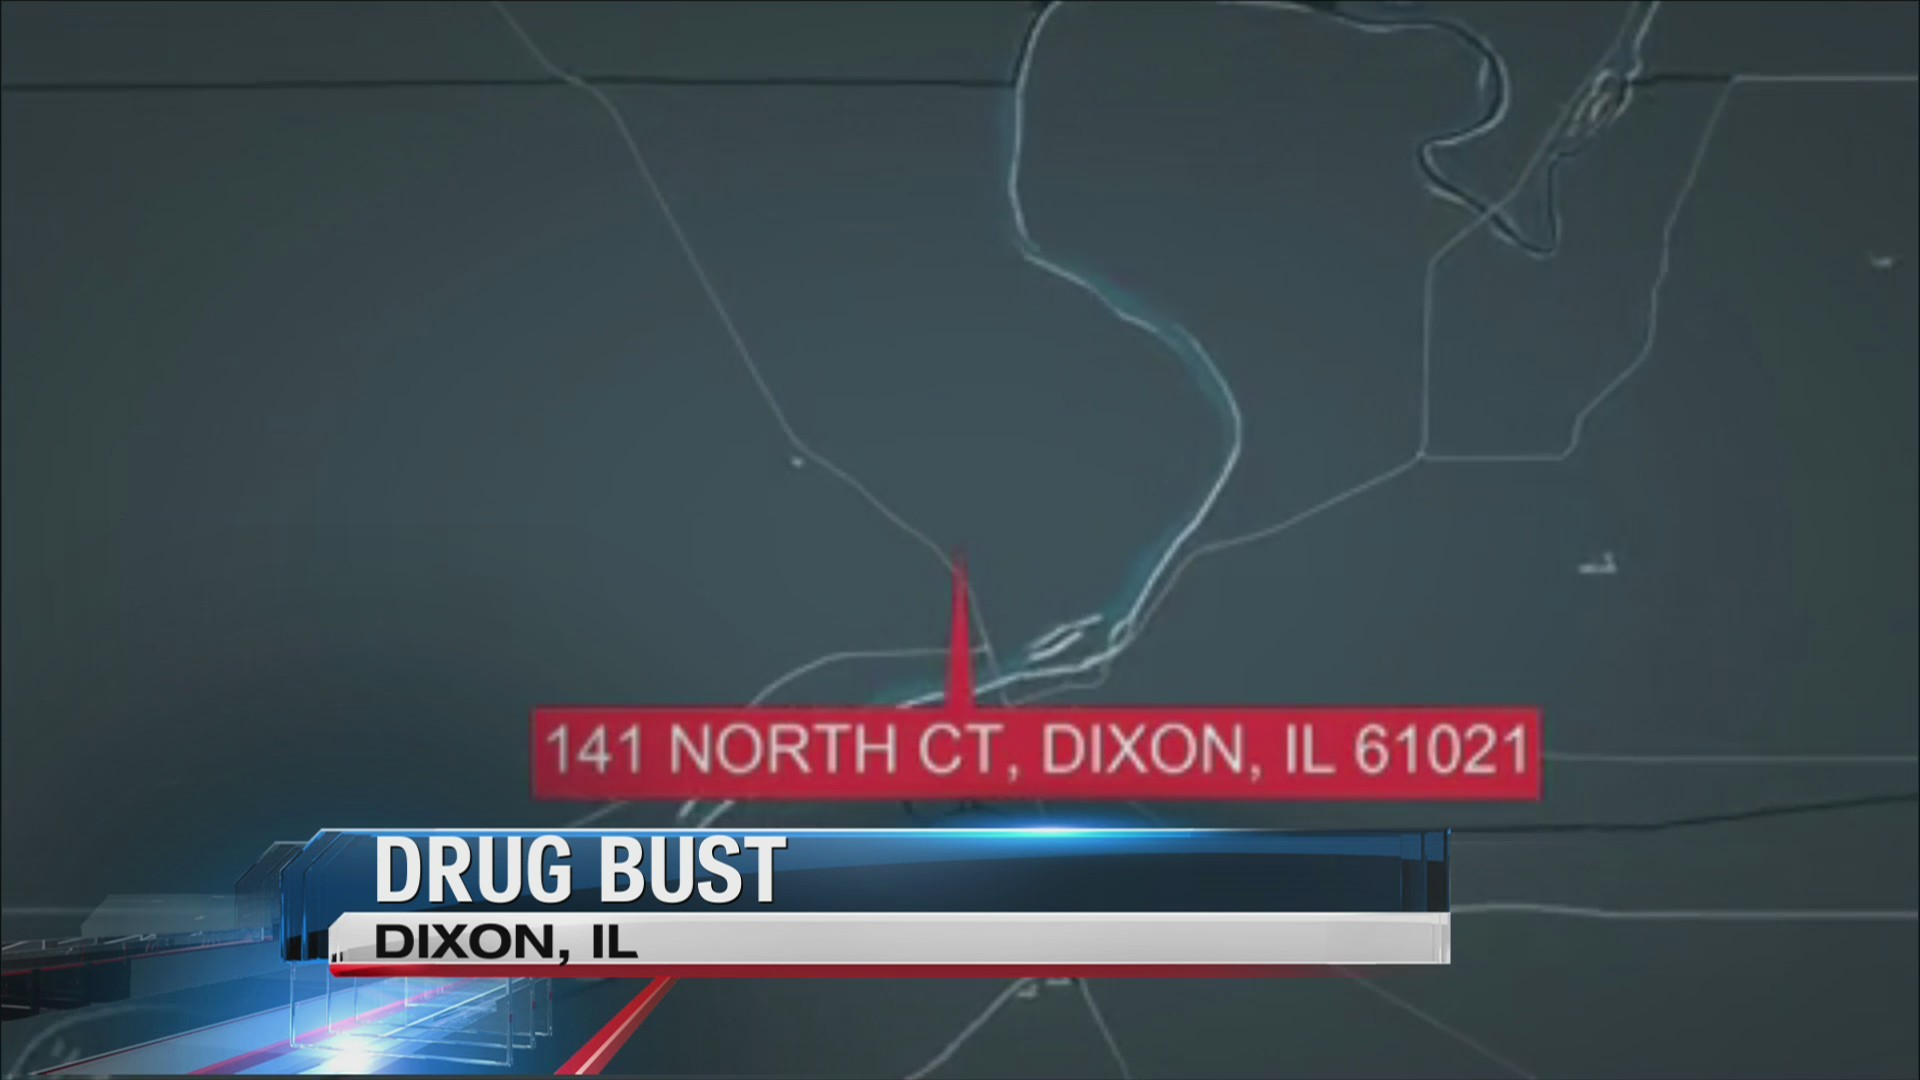 Dixon drug bust: More than 100 grams of cocaine